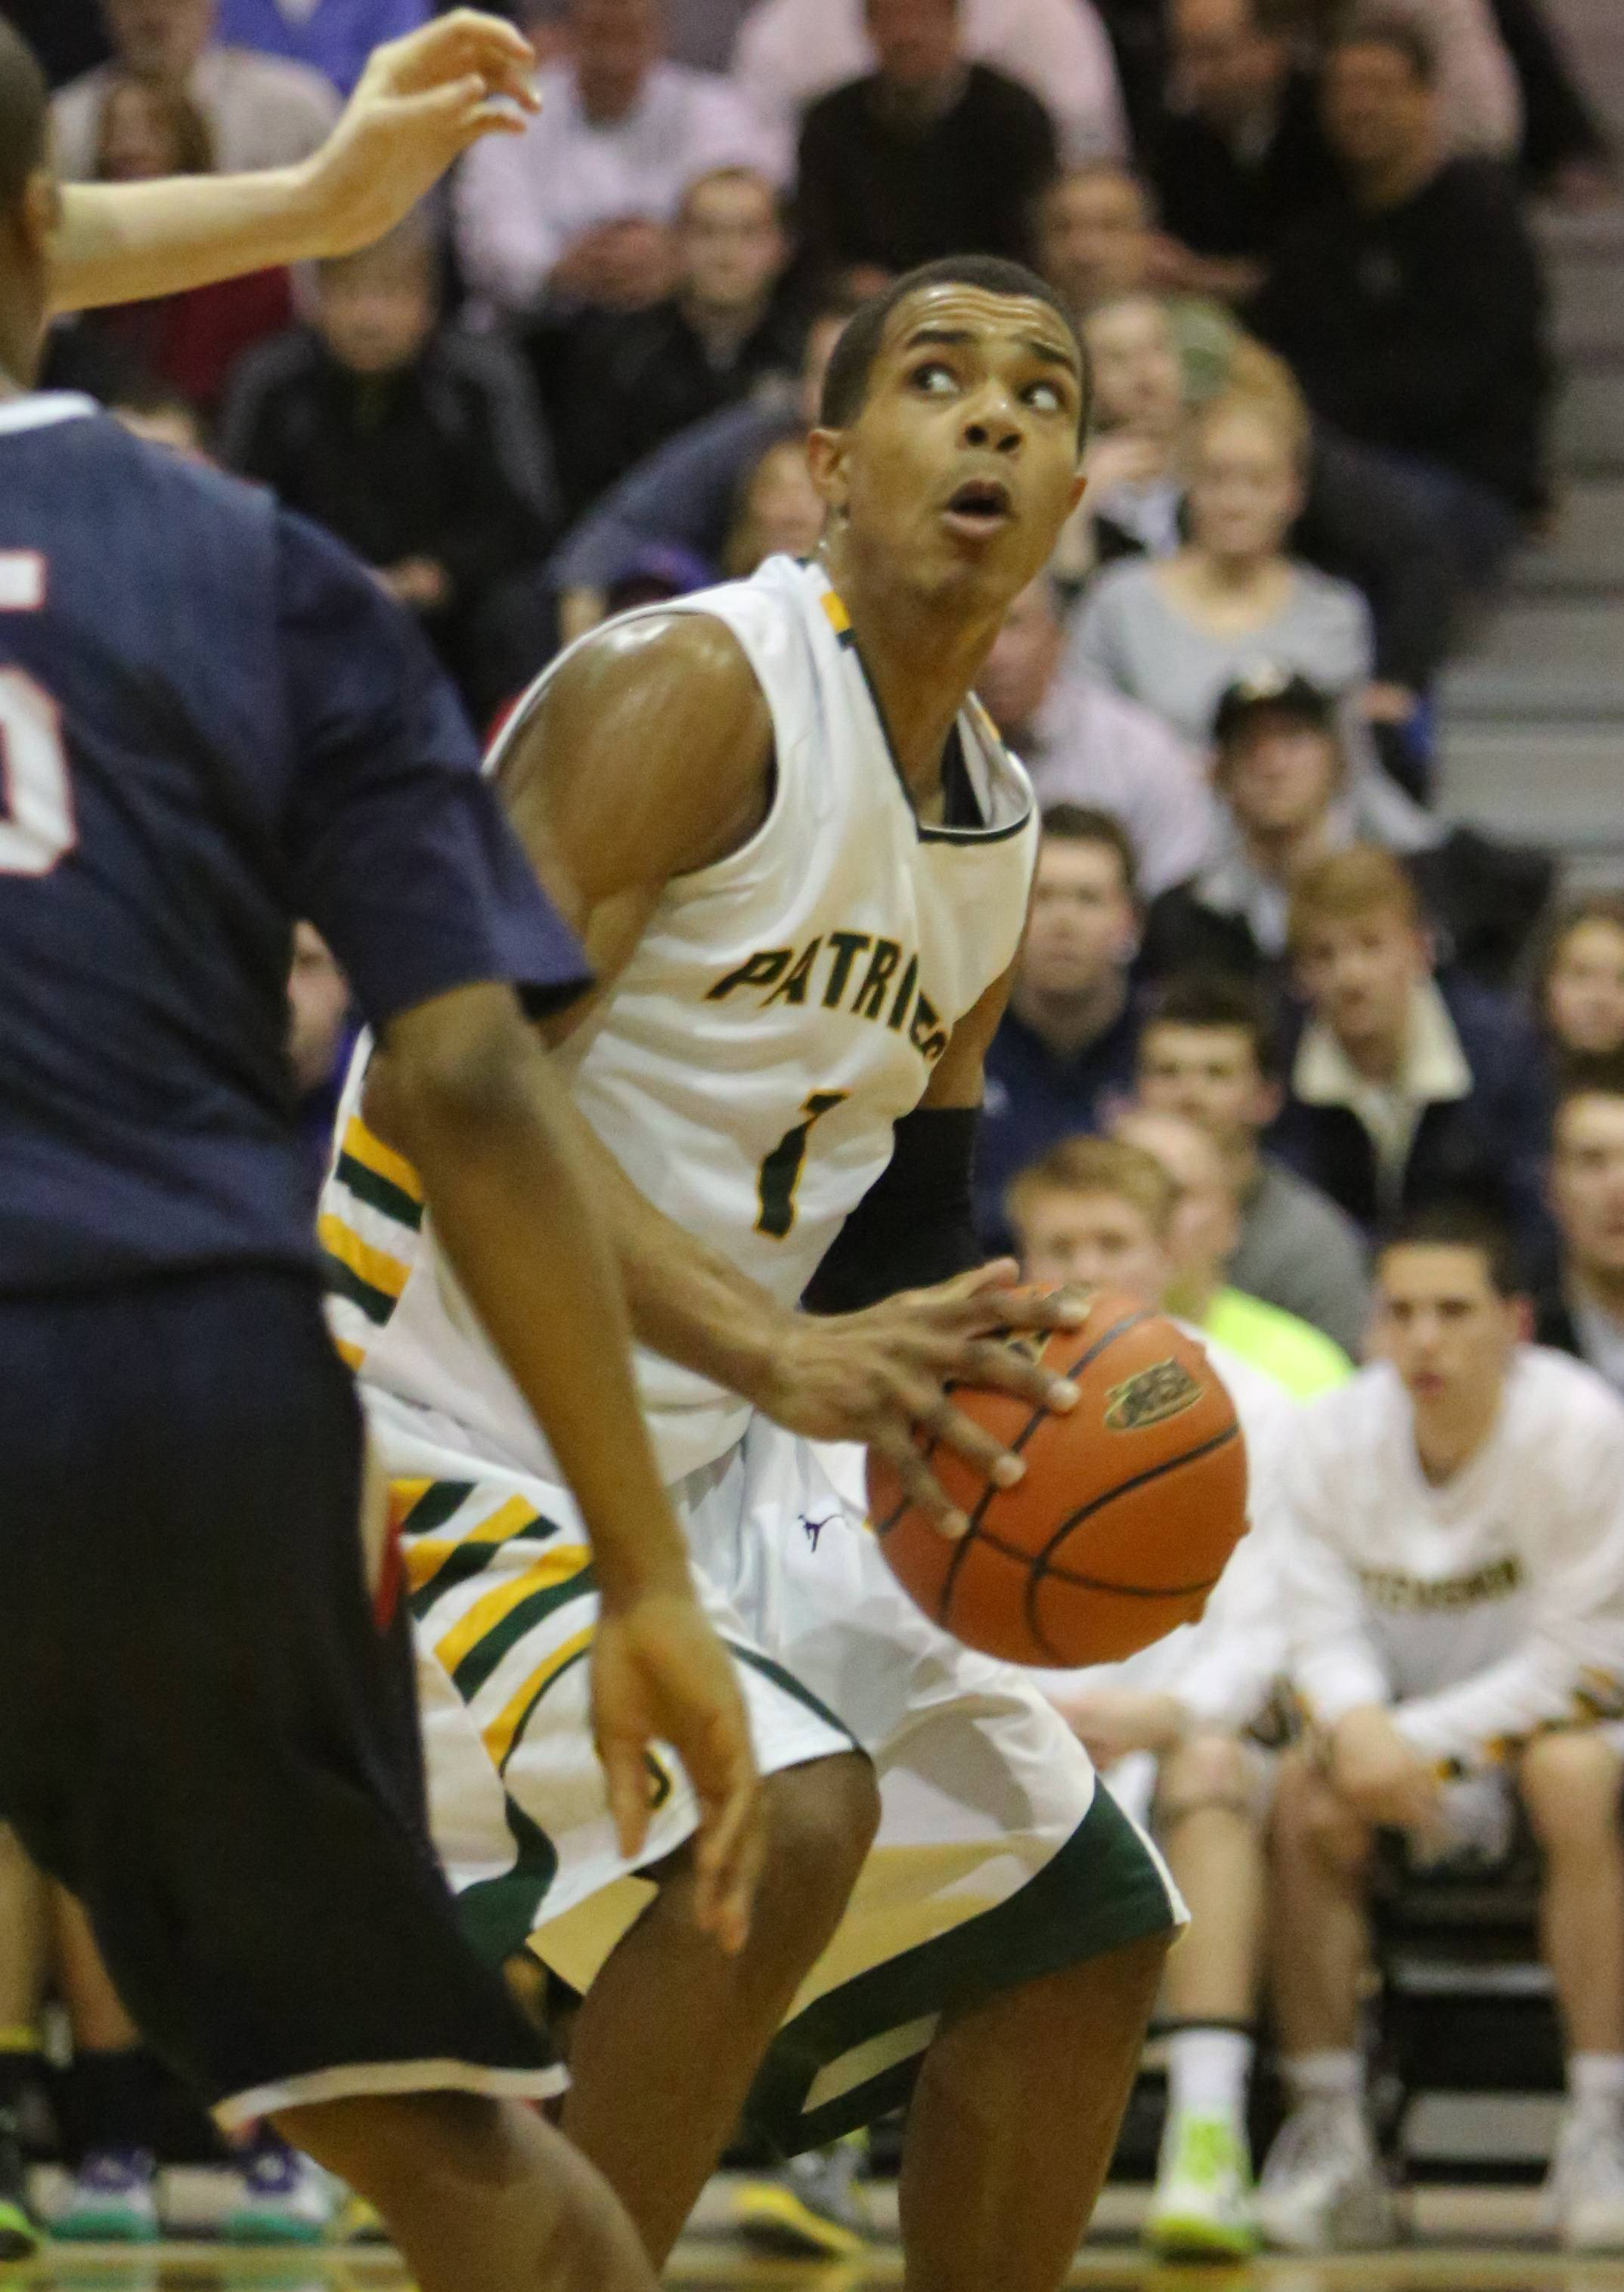 Images from the Stevenson vs. St. Viator boys basketball game on Tuesday, March 11 in Lake Zurich.